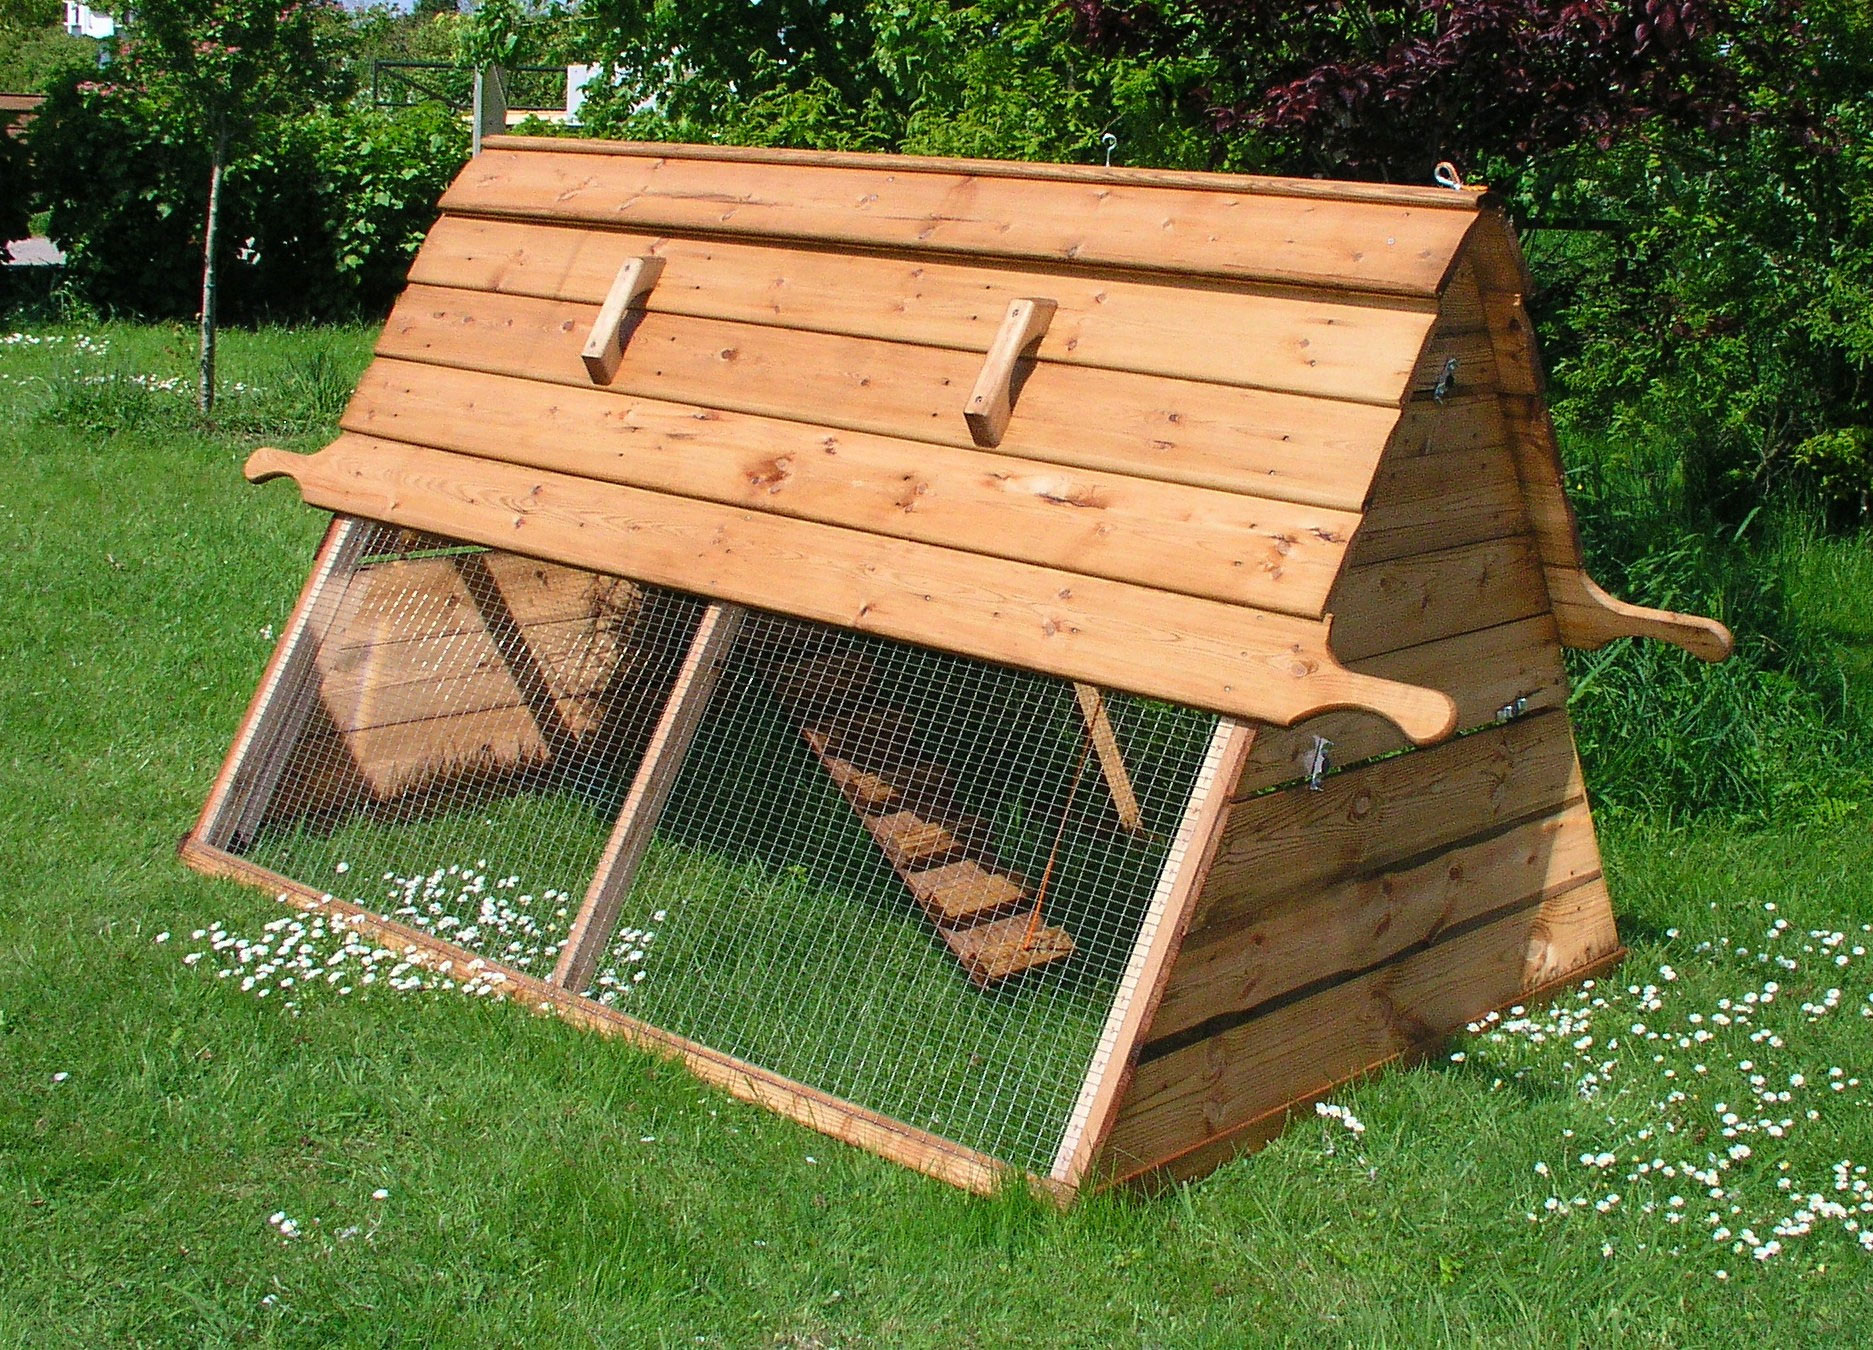 Chicken House boughton chicken coop | wooden chicken ark for 6 birds